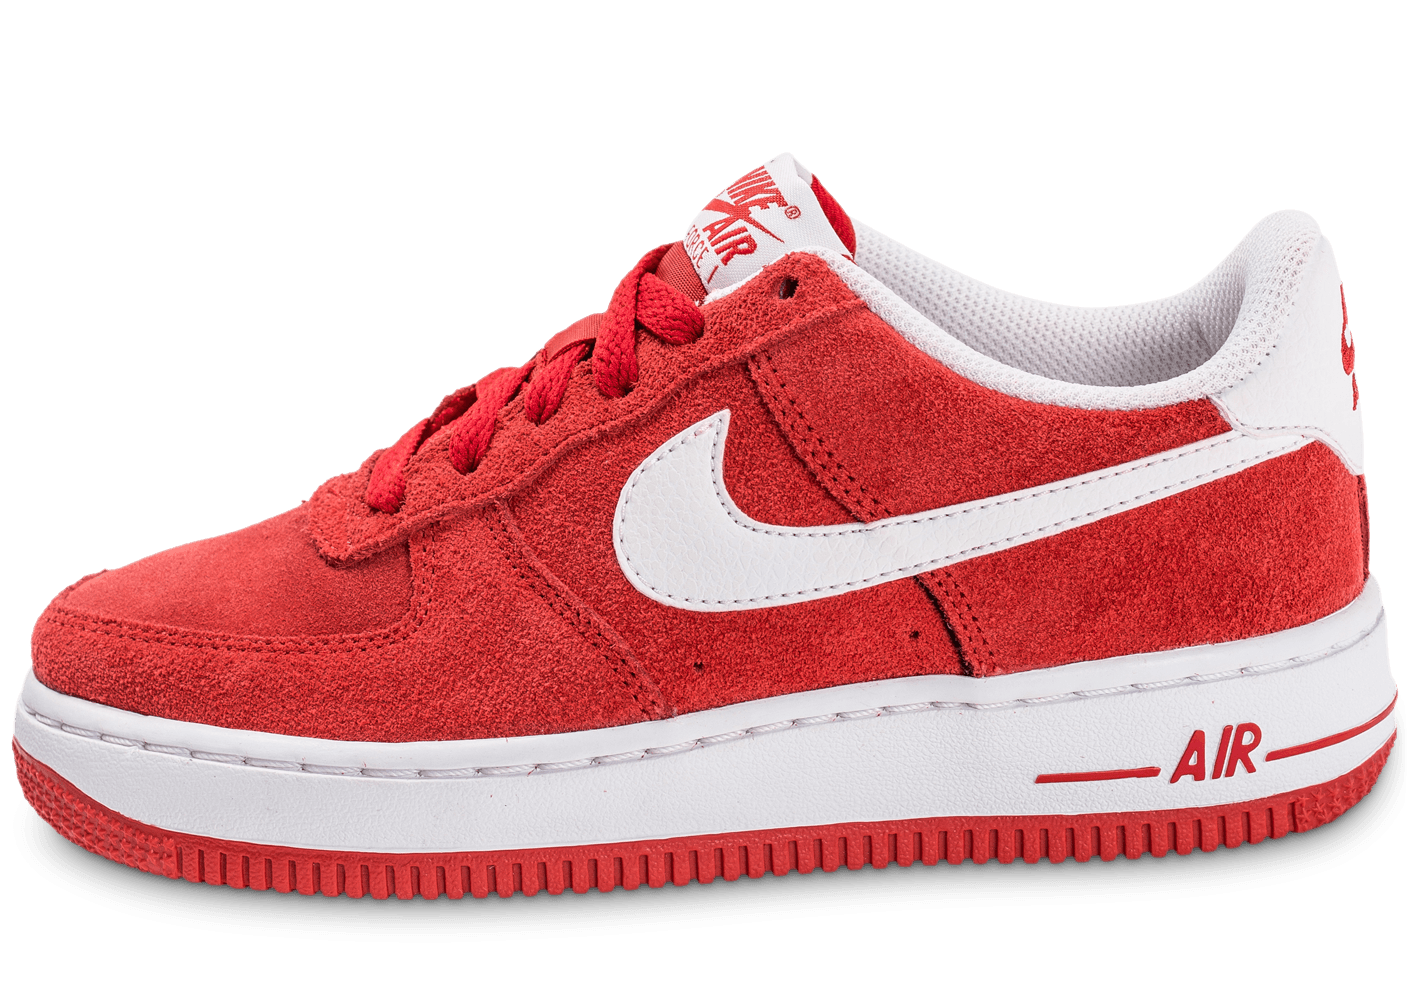 nike air force 1 suede junior rouge chaussures toutes. Black Bedroom Furniture Sets. Home Design Ideas